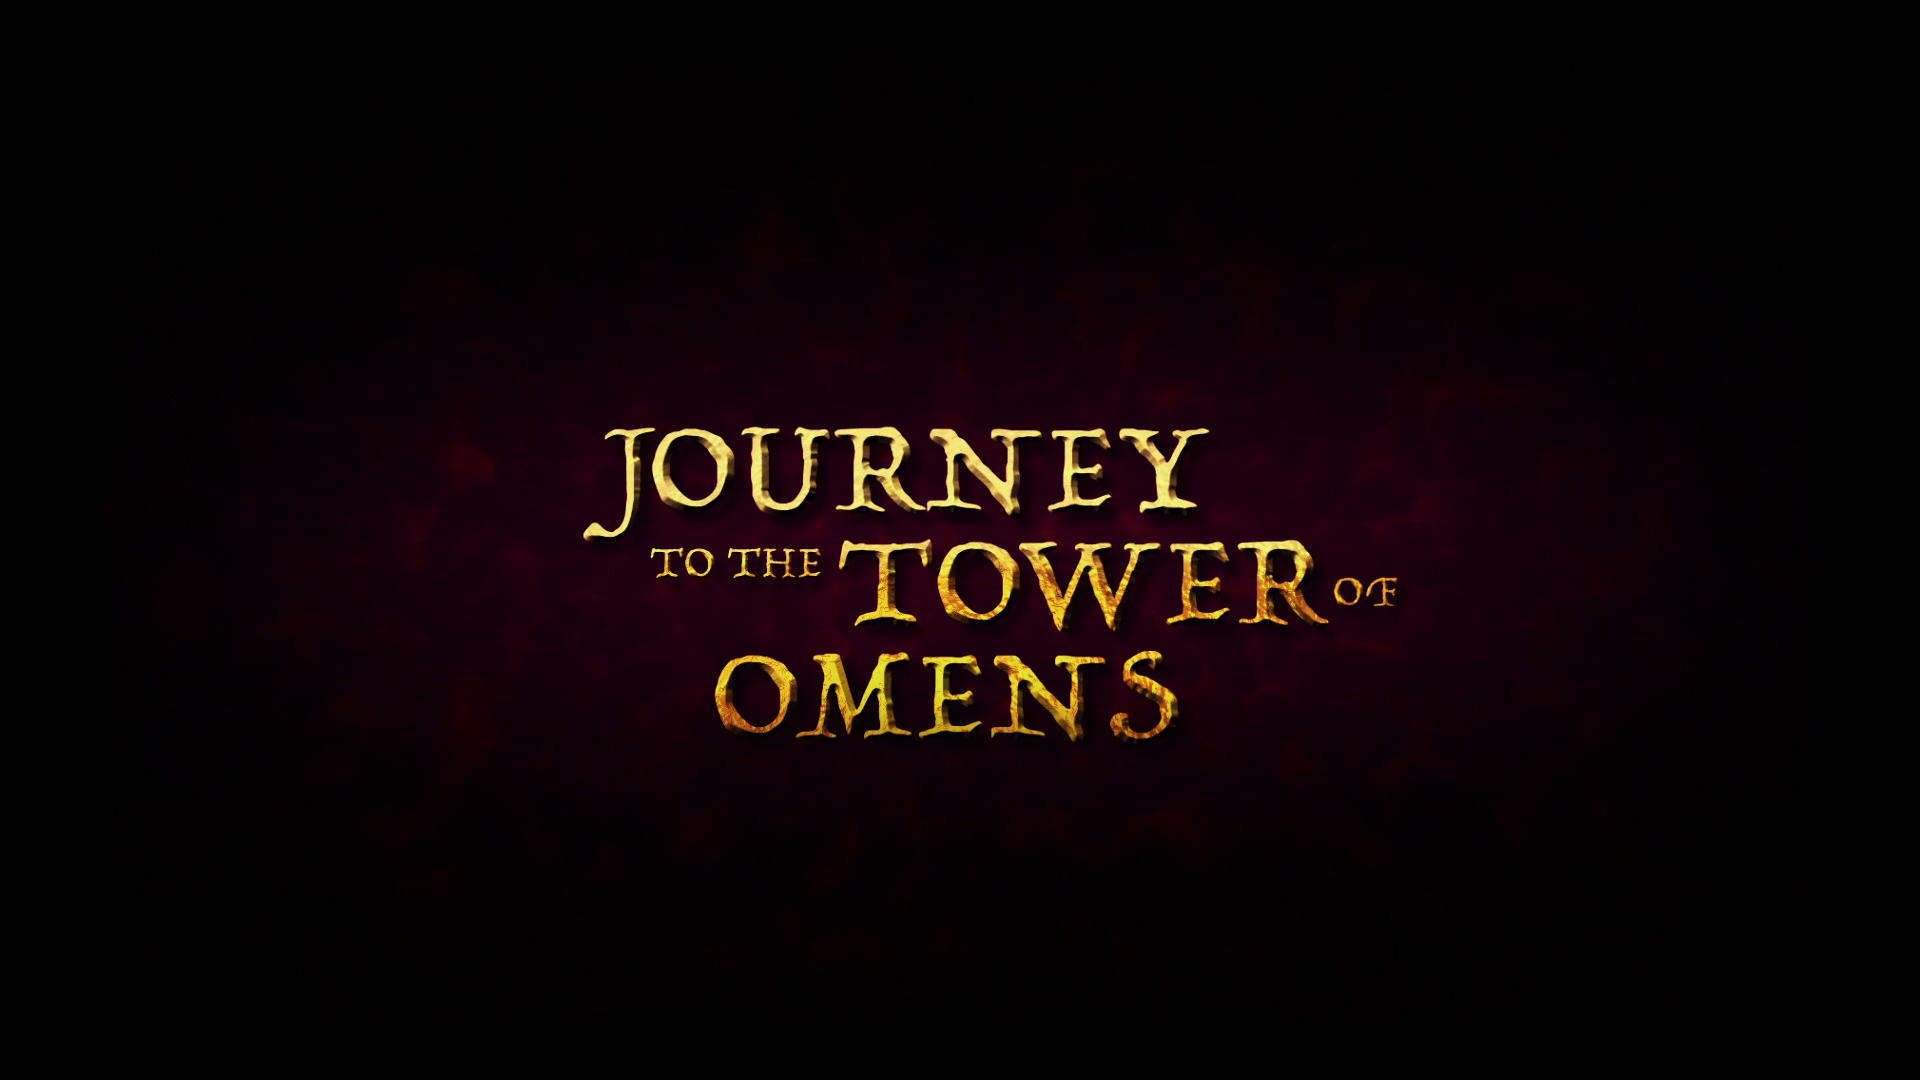 Journey to the Tower of Omens